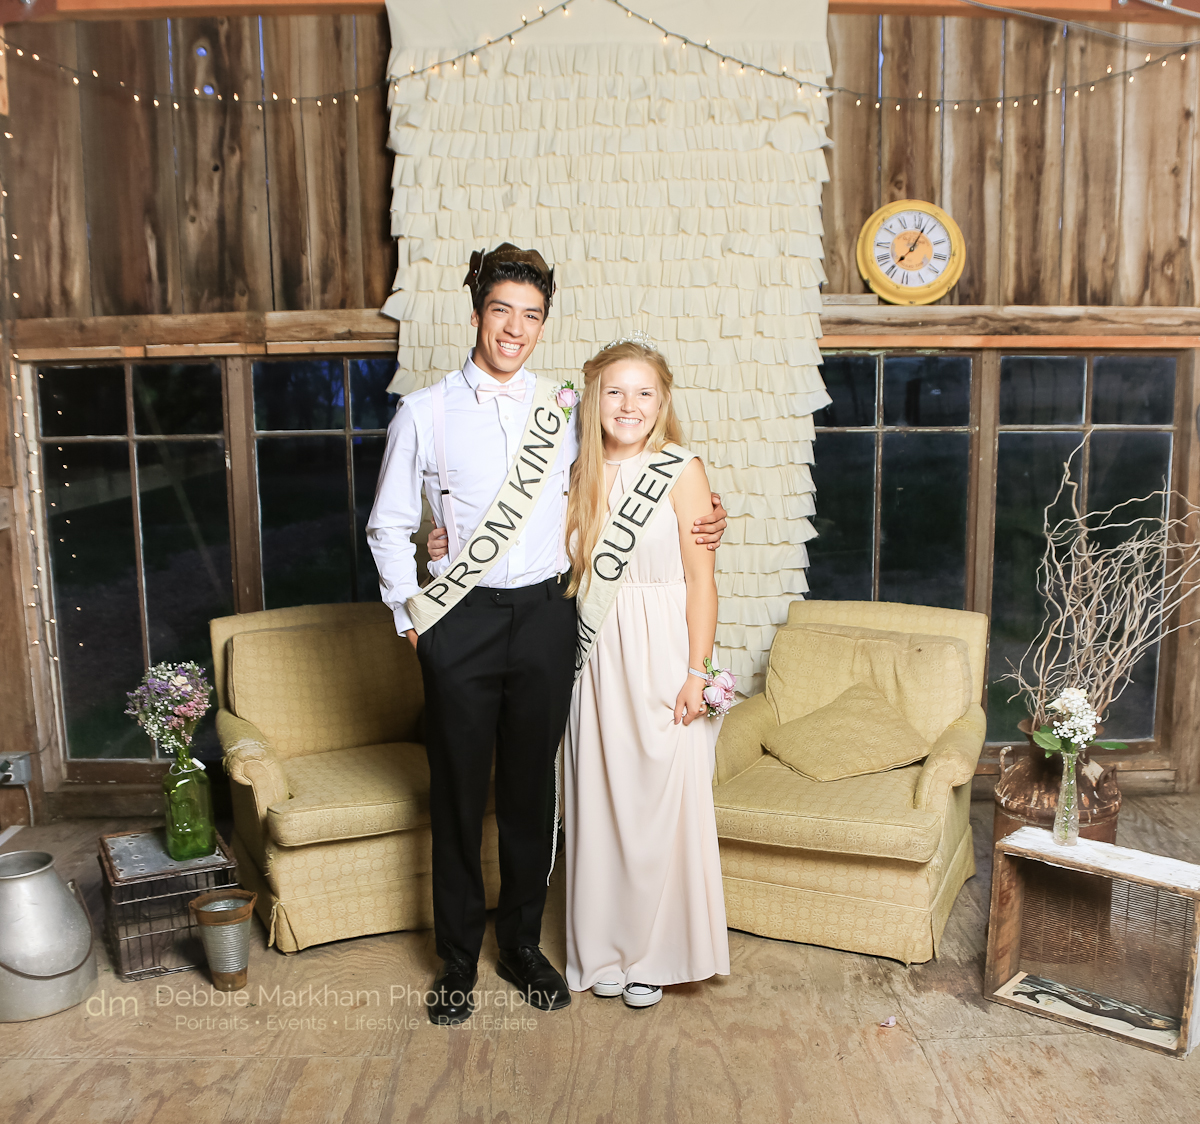 high-school-prom_event-photographer_cambria_morro-bay_san-luis-obispo_local_fun_prom-photos-4165